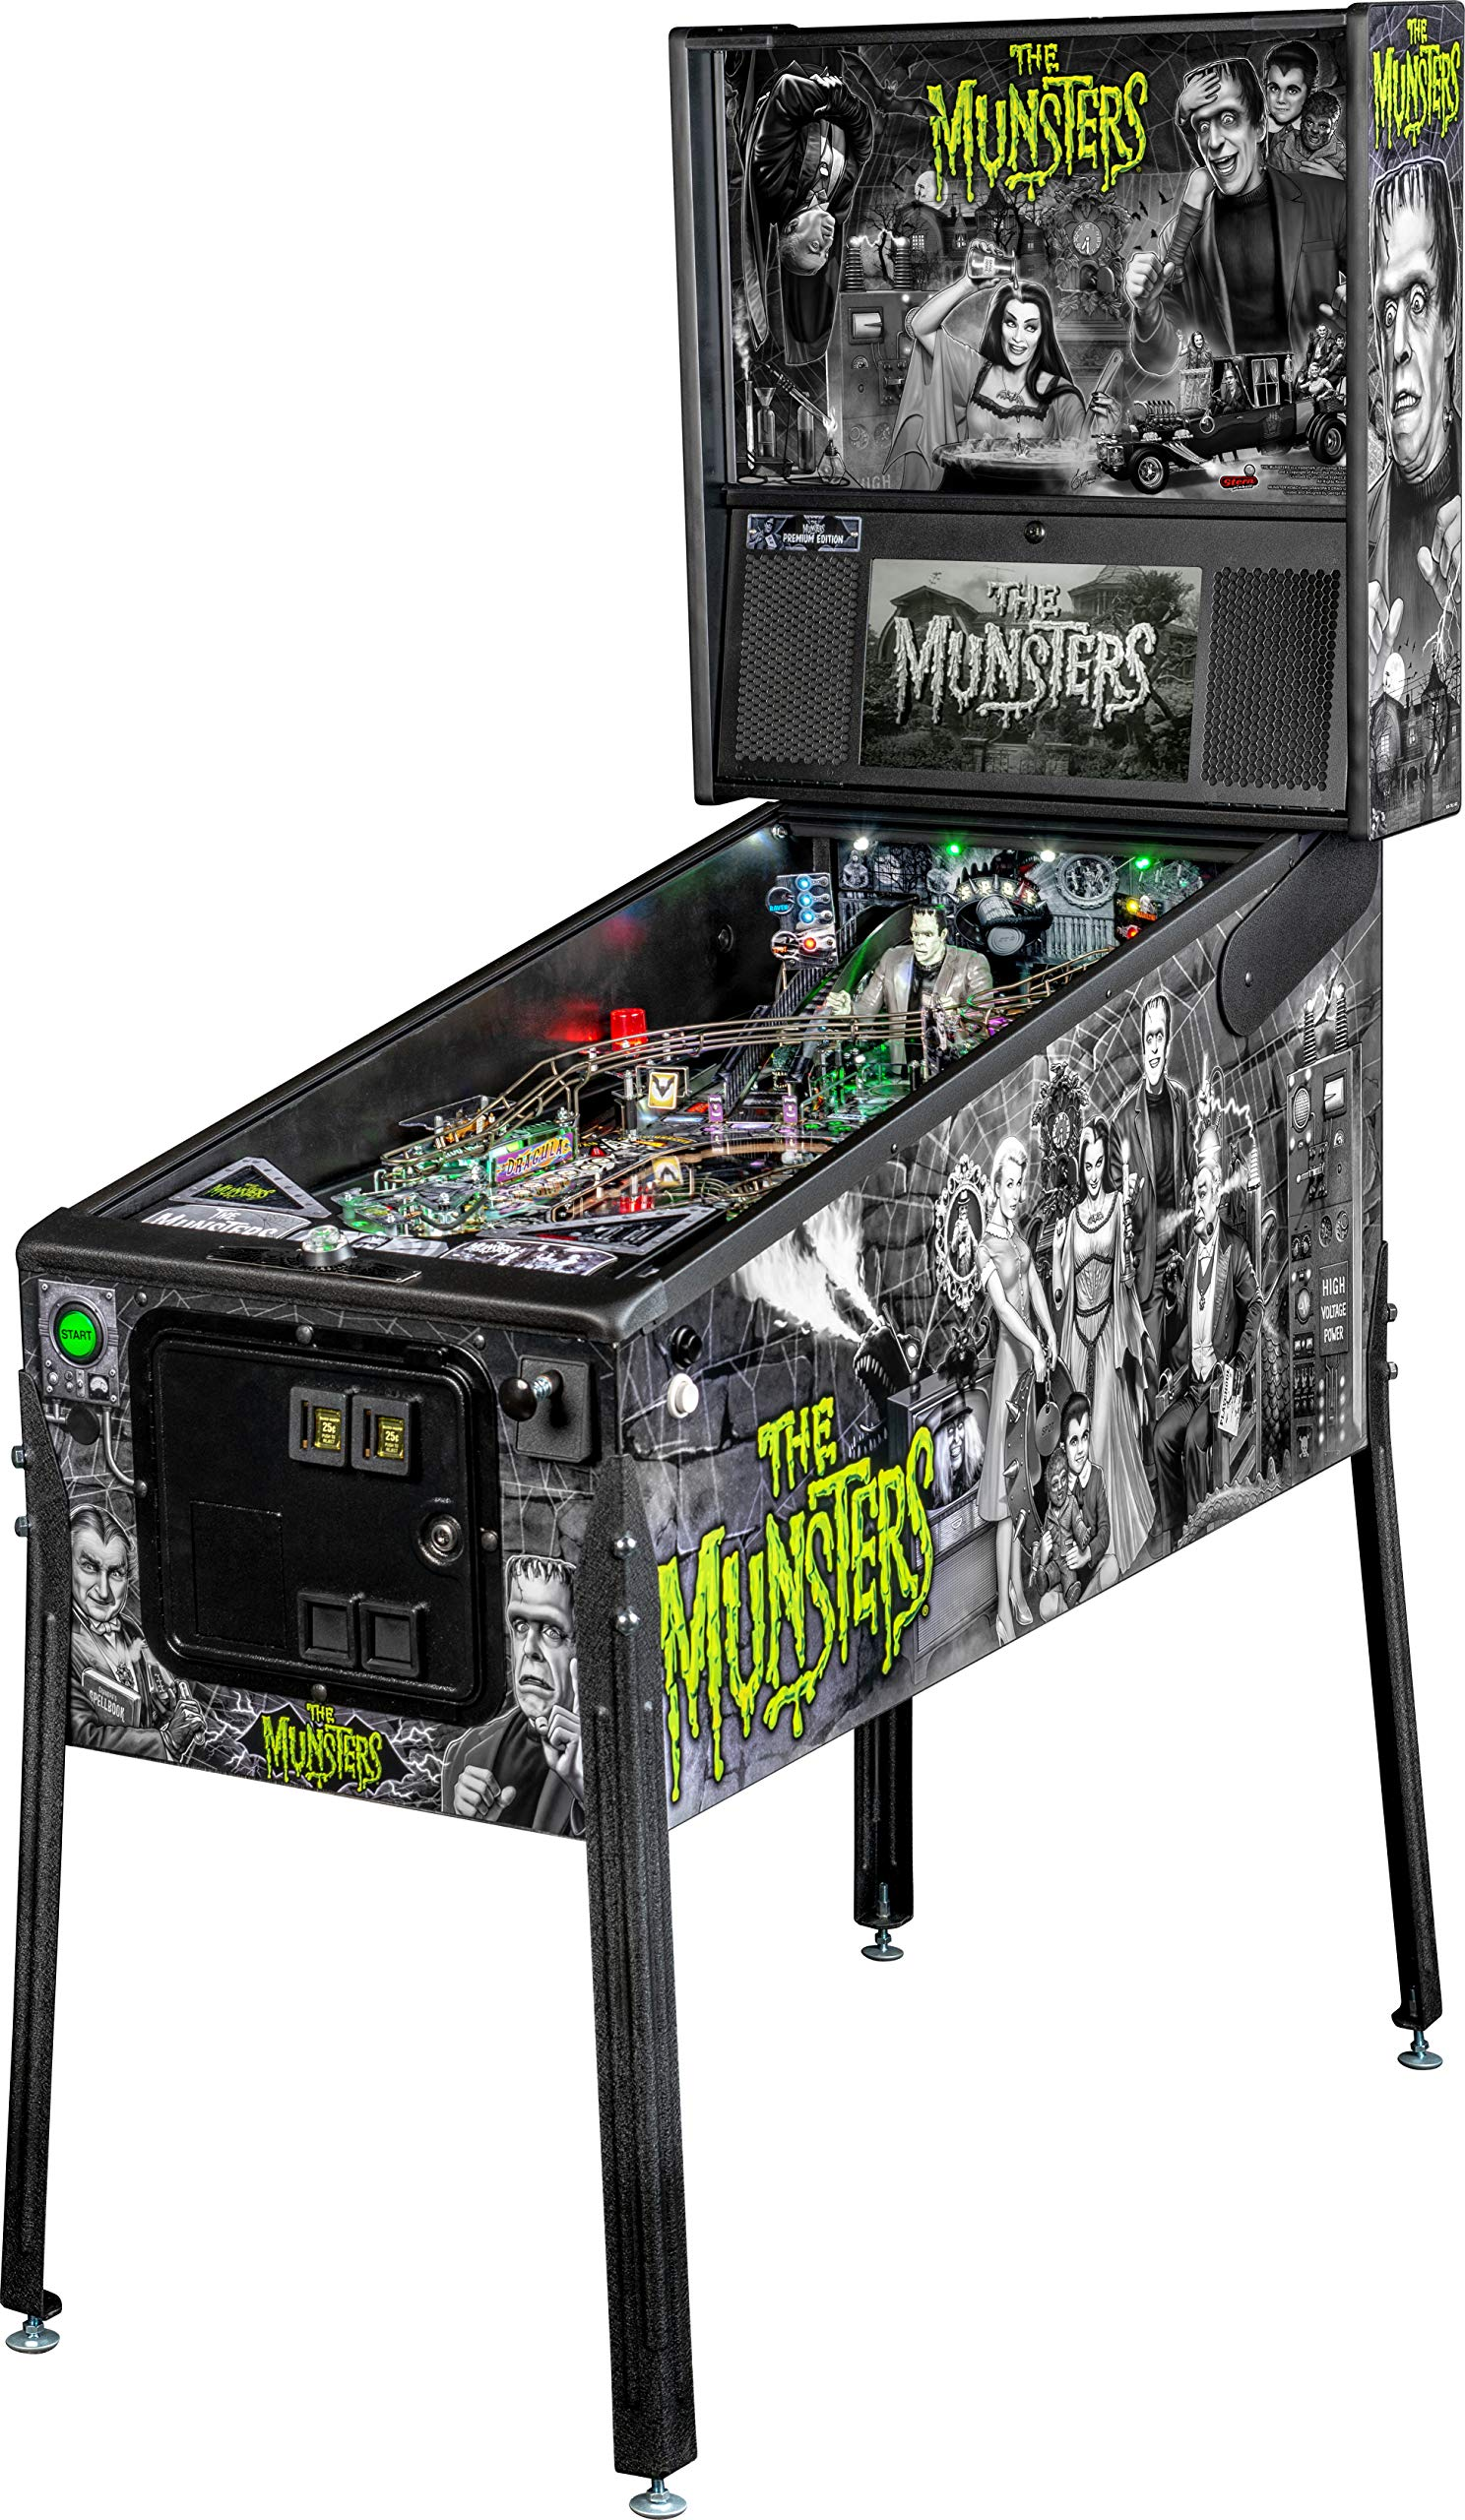 Stern Pinball Munsters Arcade Pinball Machine, Premium Edition by Stern Pinball